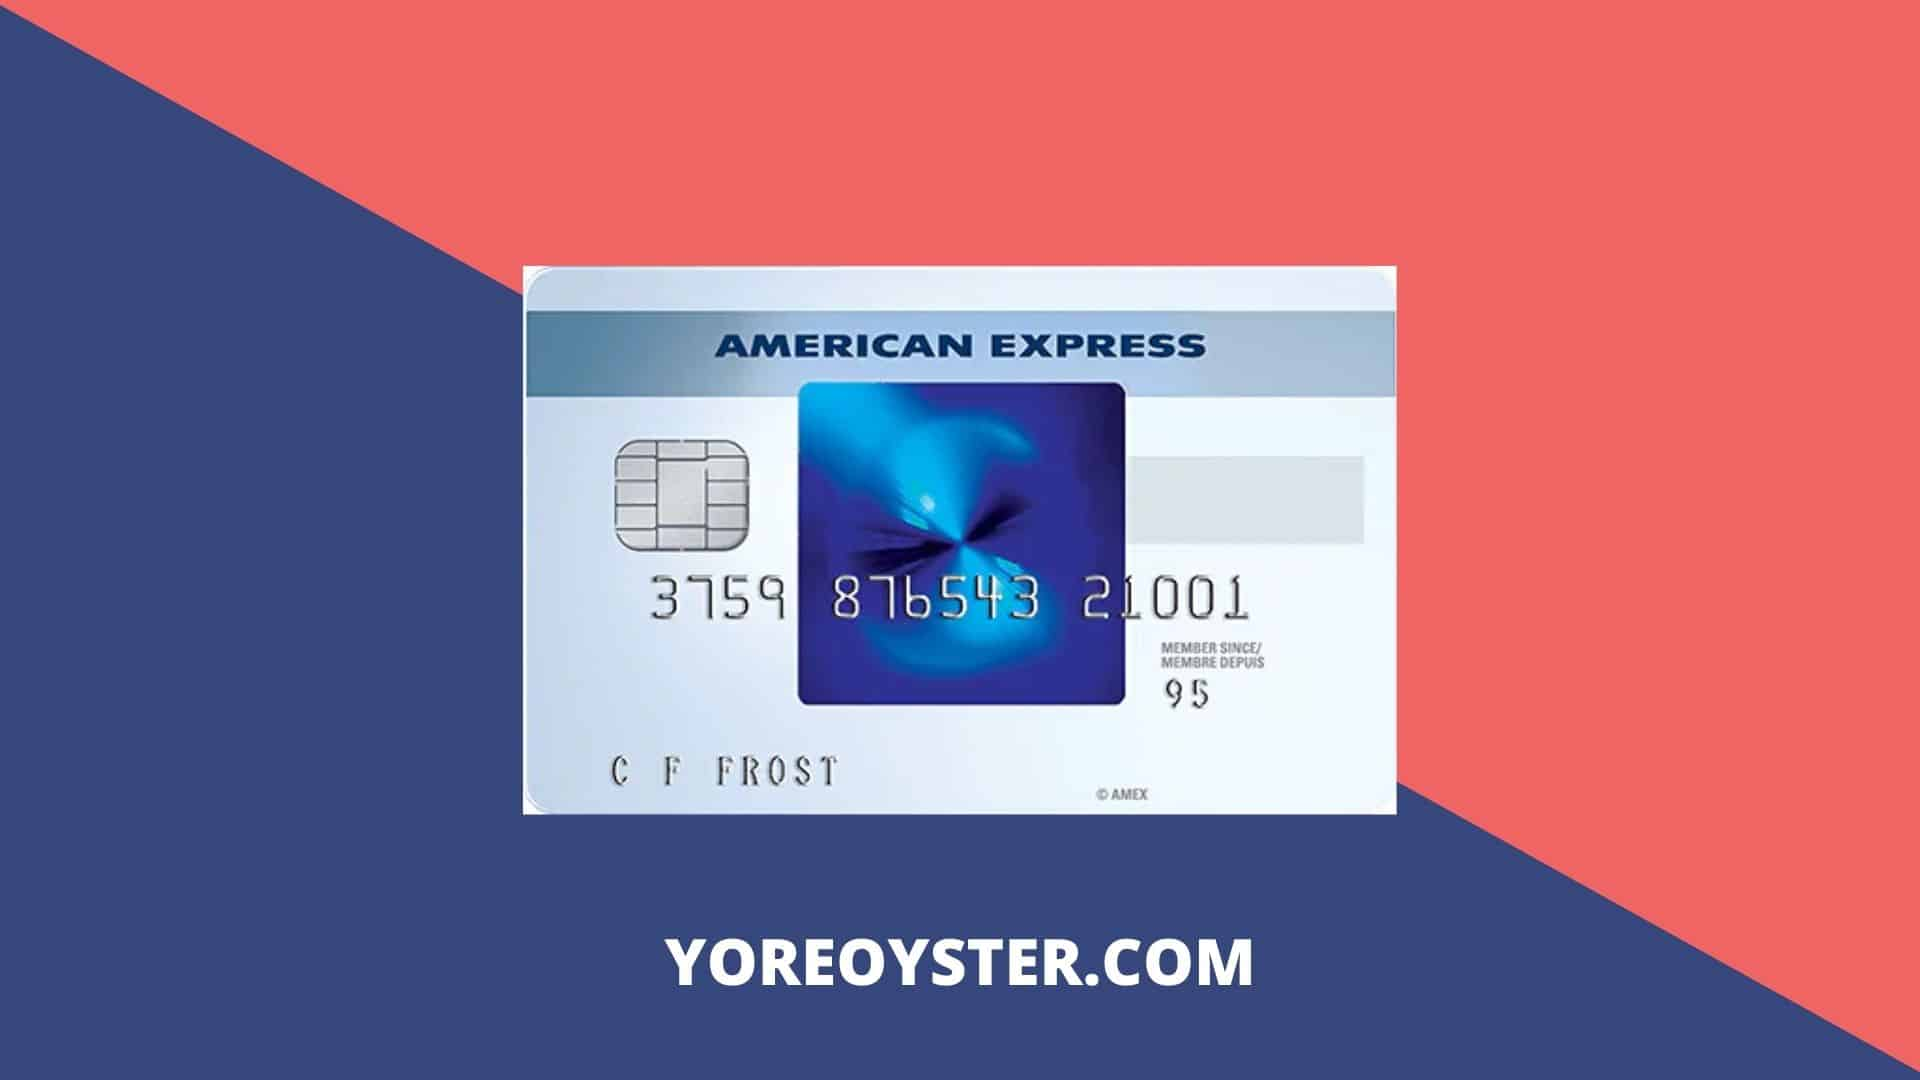 American Express Choice Card